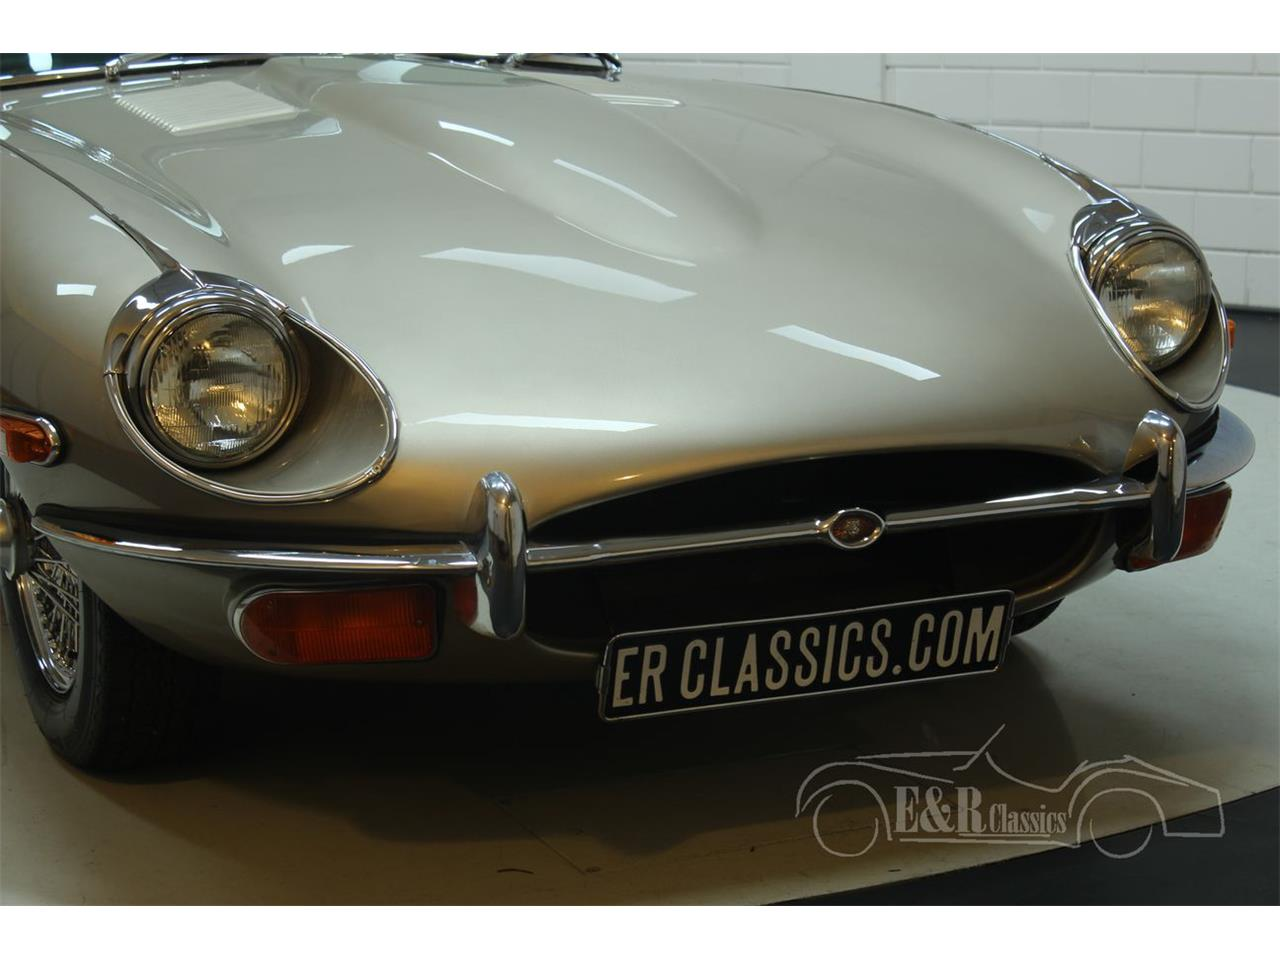 Large Picture of 1970 Jaguar E-Type located in Waalwijk - Keine Angabe - Offered by E & R Classics - PH40